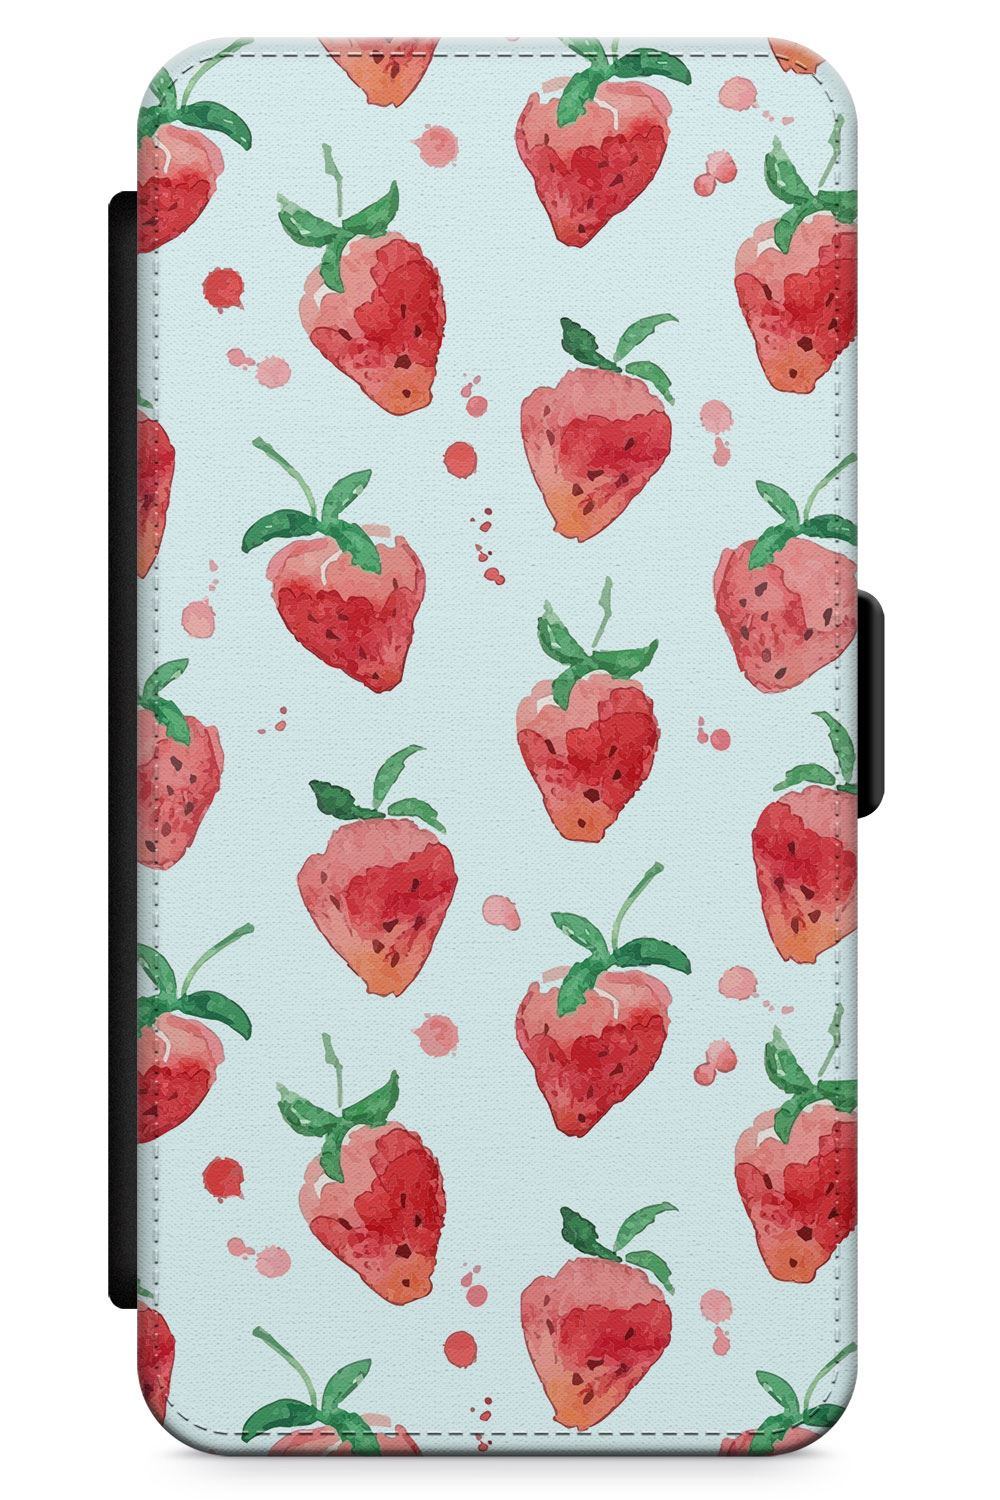 Strawberry-Watercolour-Slim-Flexible-Phone-Case-for-iPhone-Cute-Summer-Pattern